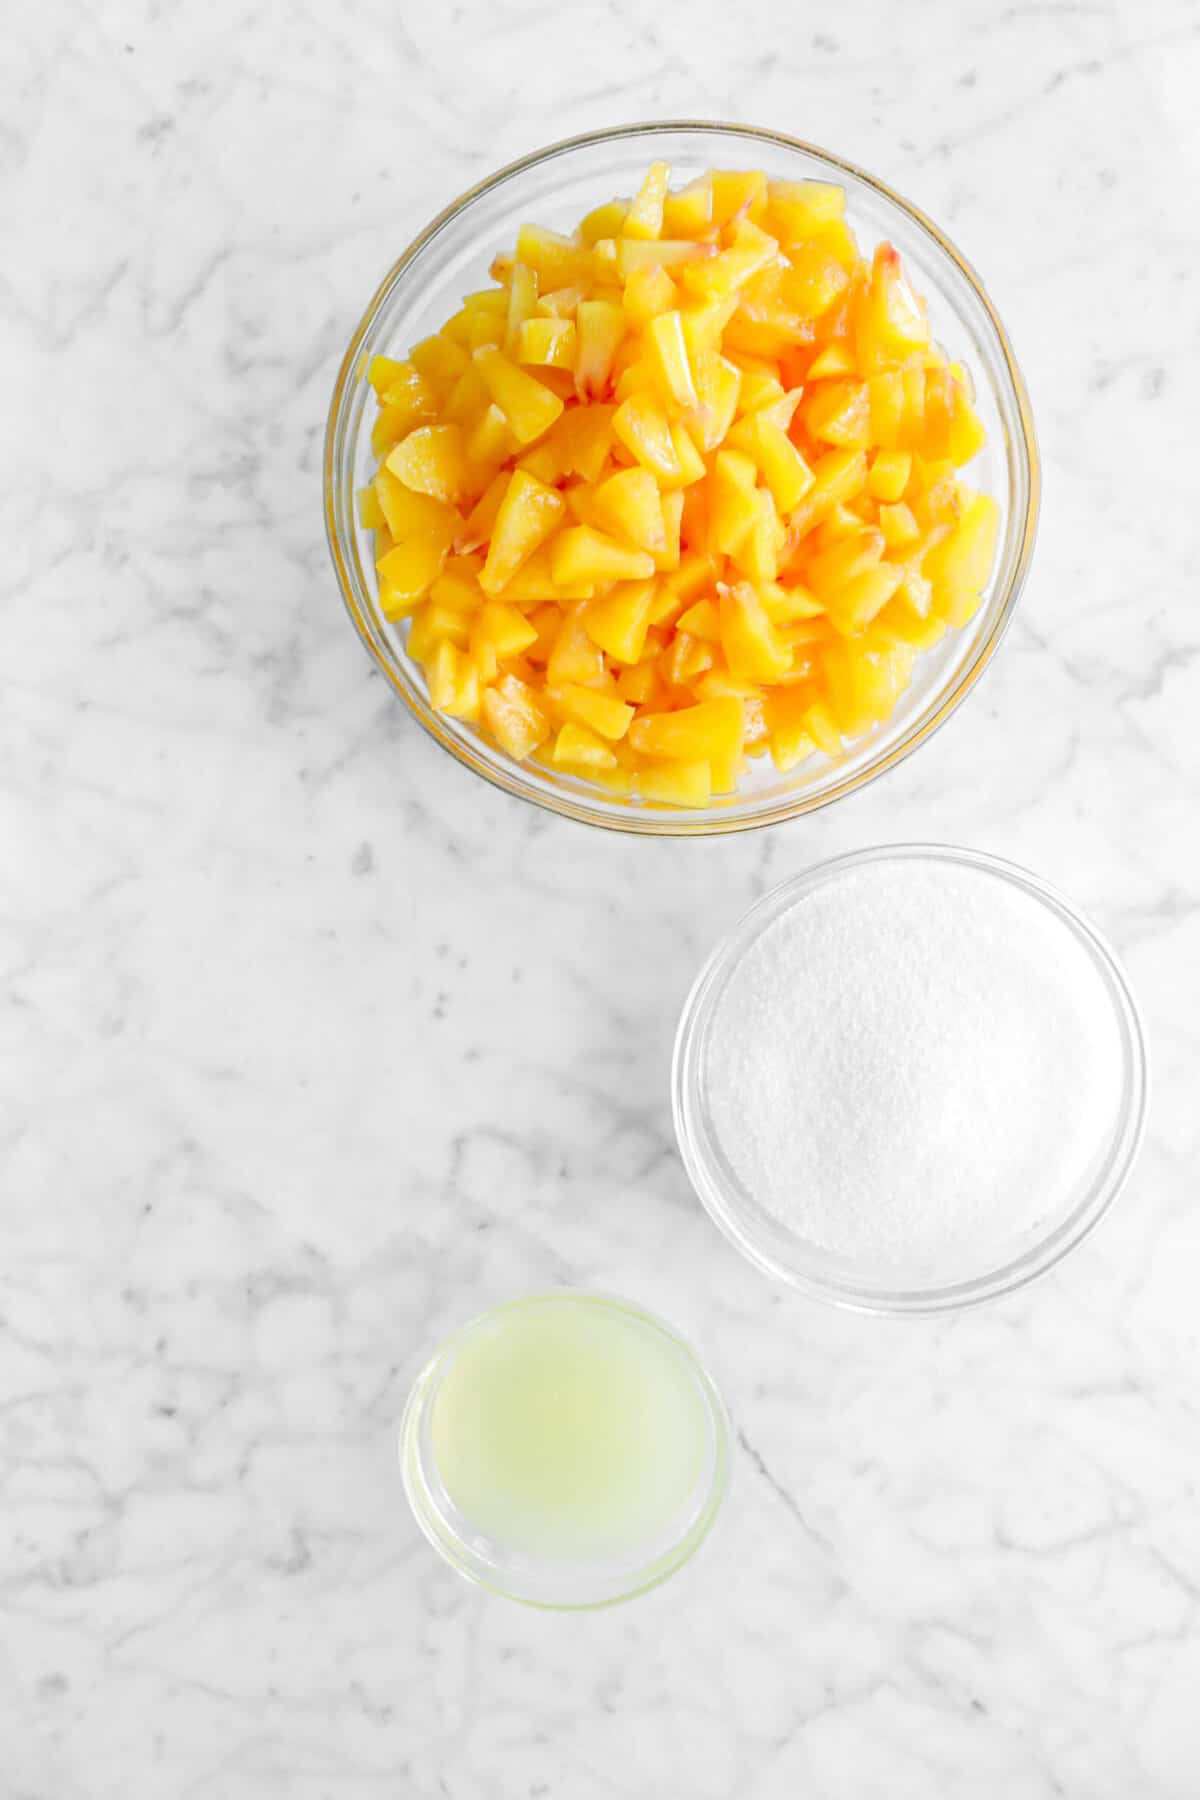 chopped peaches, sugar, and lemon juice in glass bowls